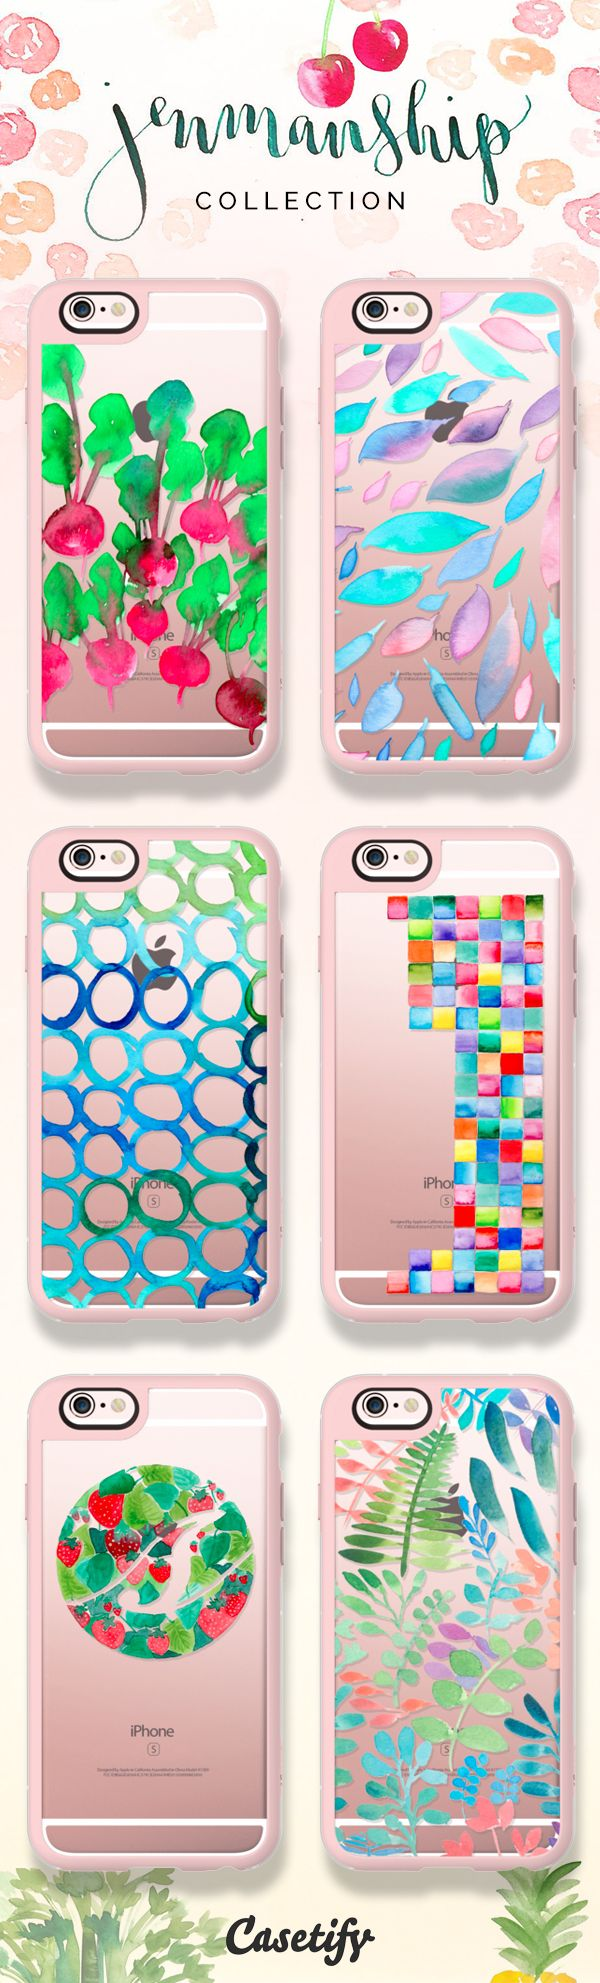 Check out these beautifully illustrated cases by Jenmanship! https://www.casetify.com/artworks/zlHwFccoD6 | @casetify